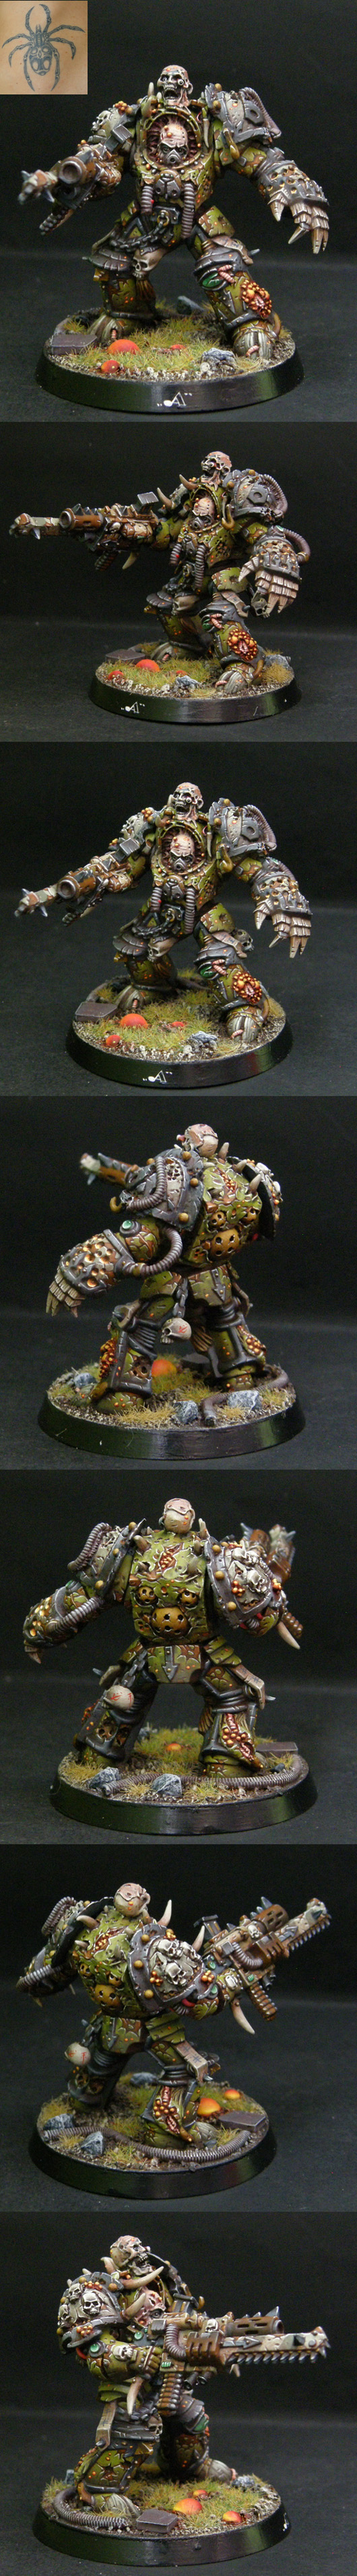 DEATH GUARD TERMINATOR with forgeword part